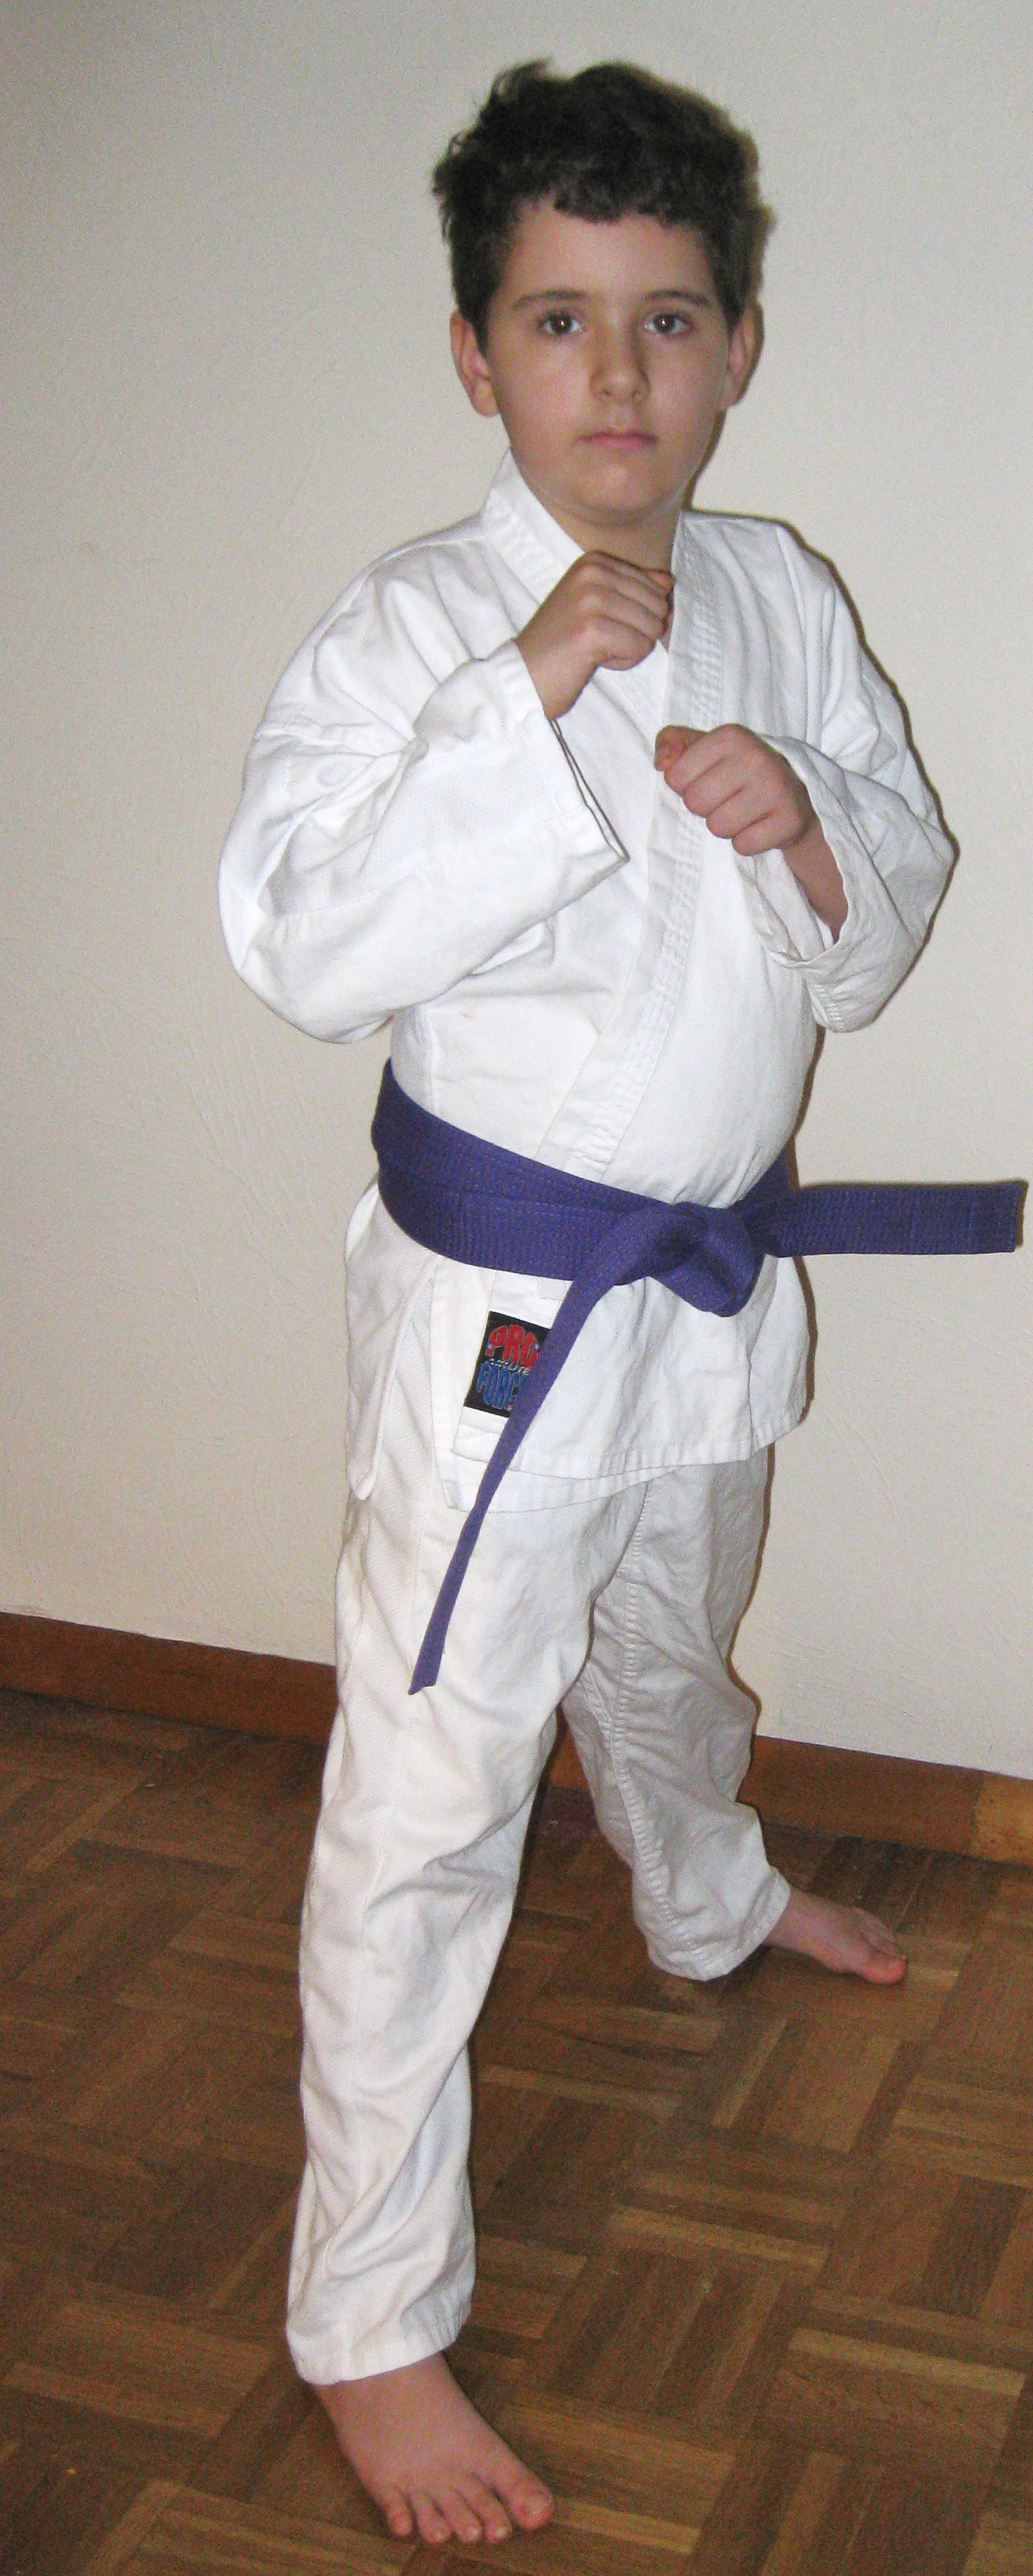 His Test For Purple Belt